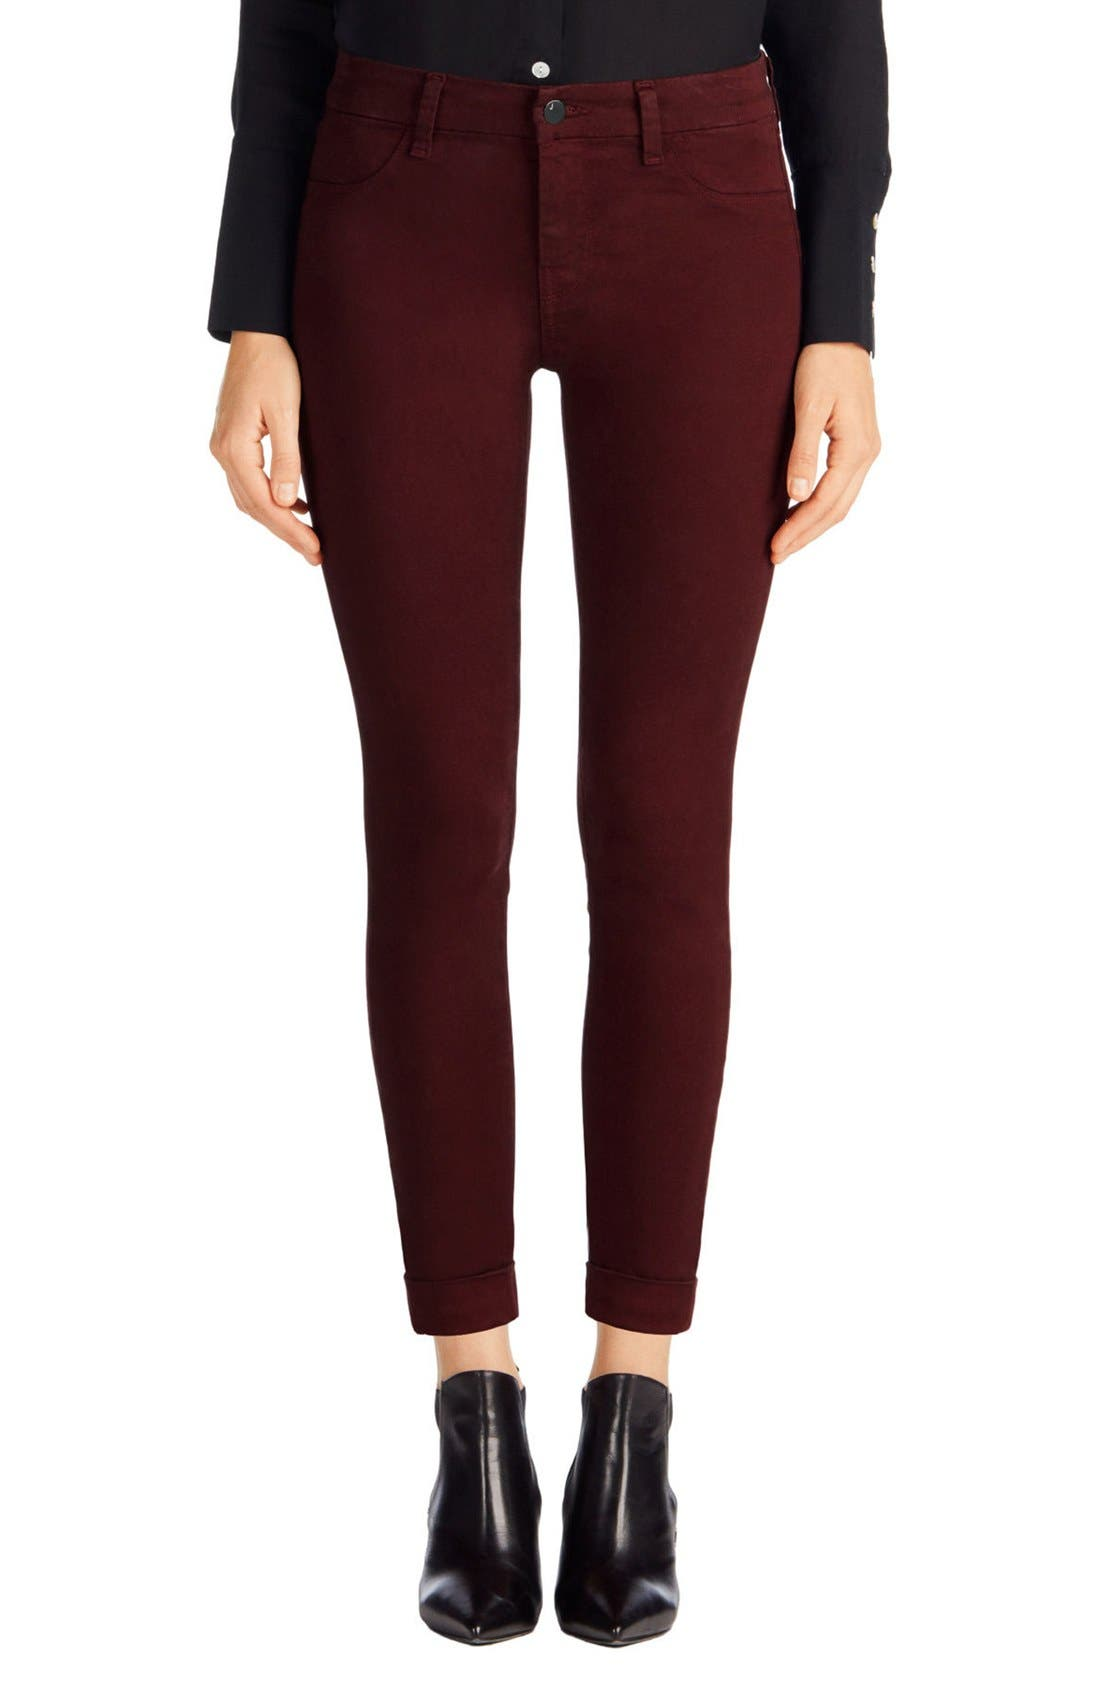 'Anja' Cuffed Crop Skinny Jeans,                             Alternate thumbnail 29, color,